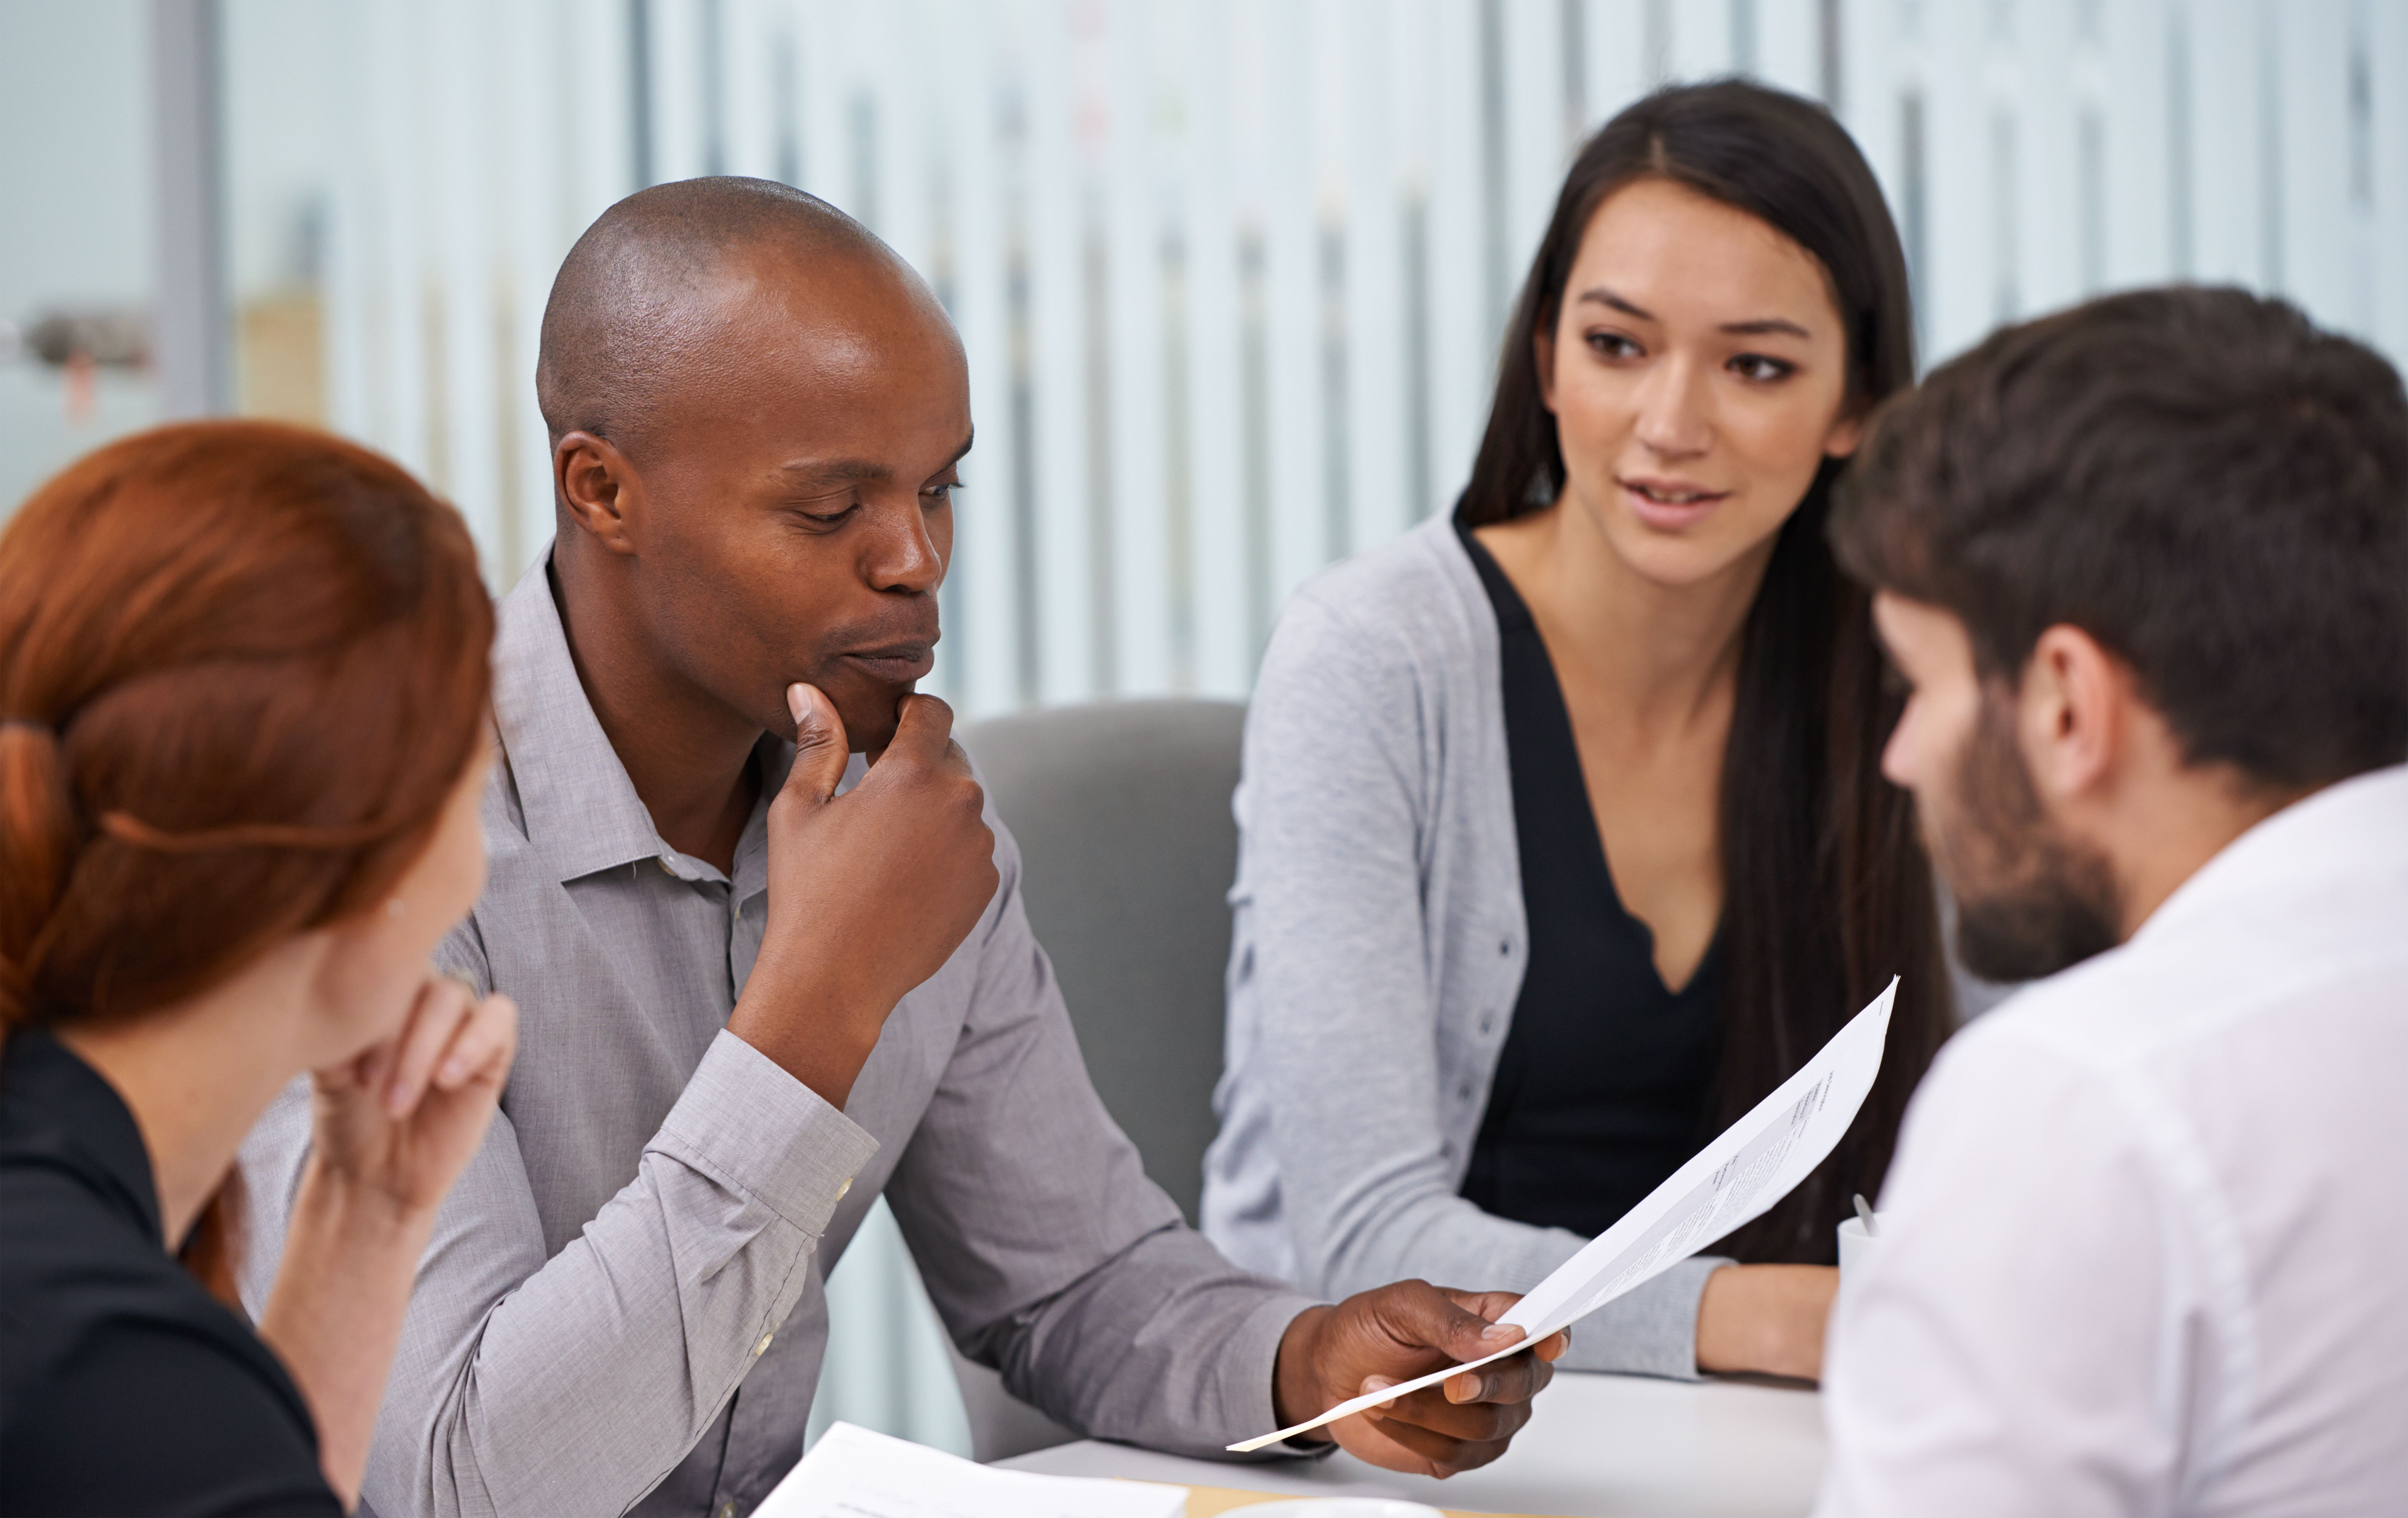 18 interview questions to assess candidate cultural fit